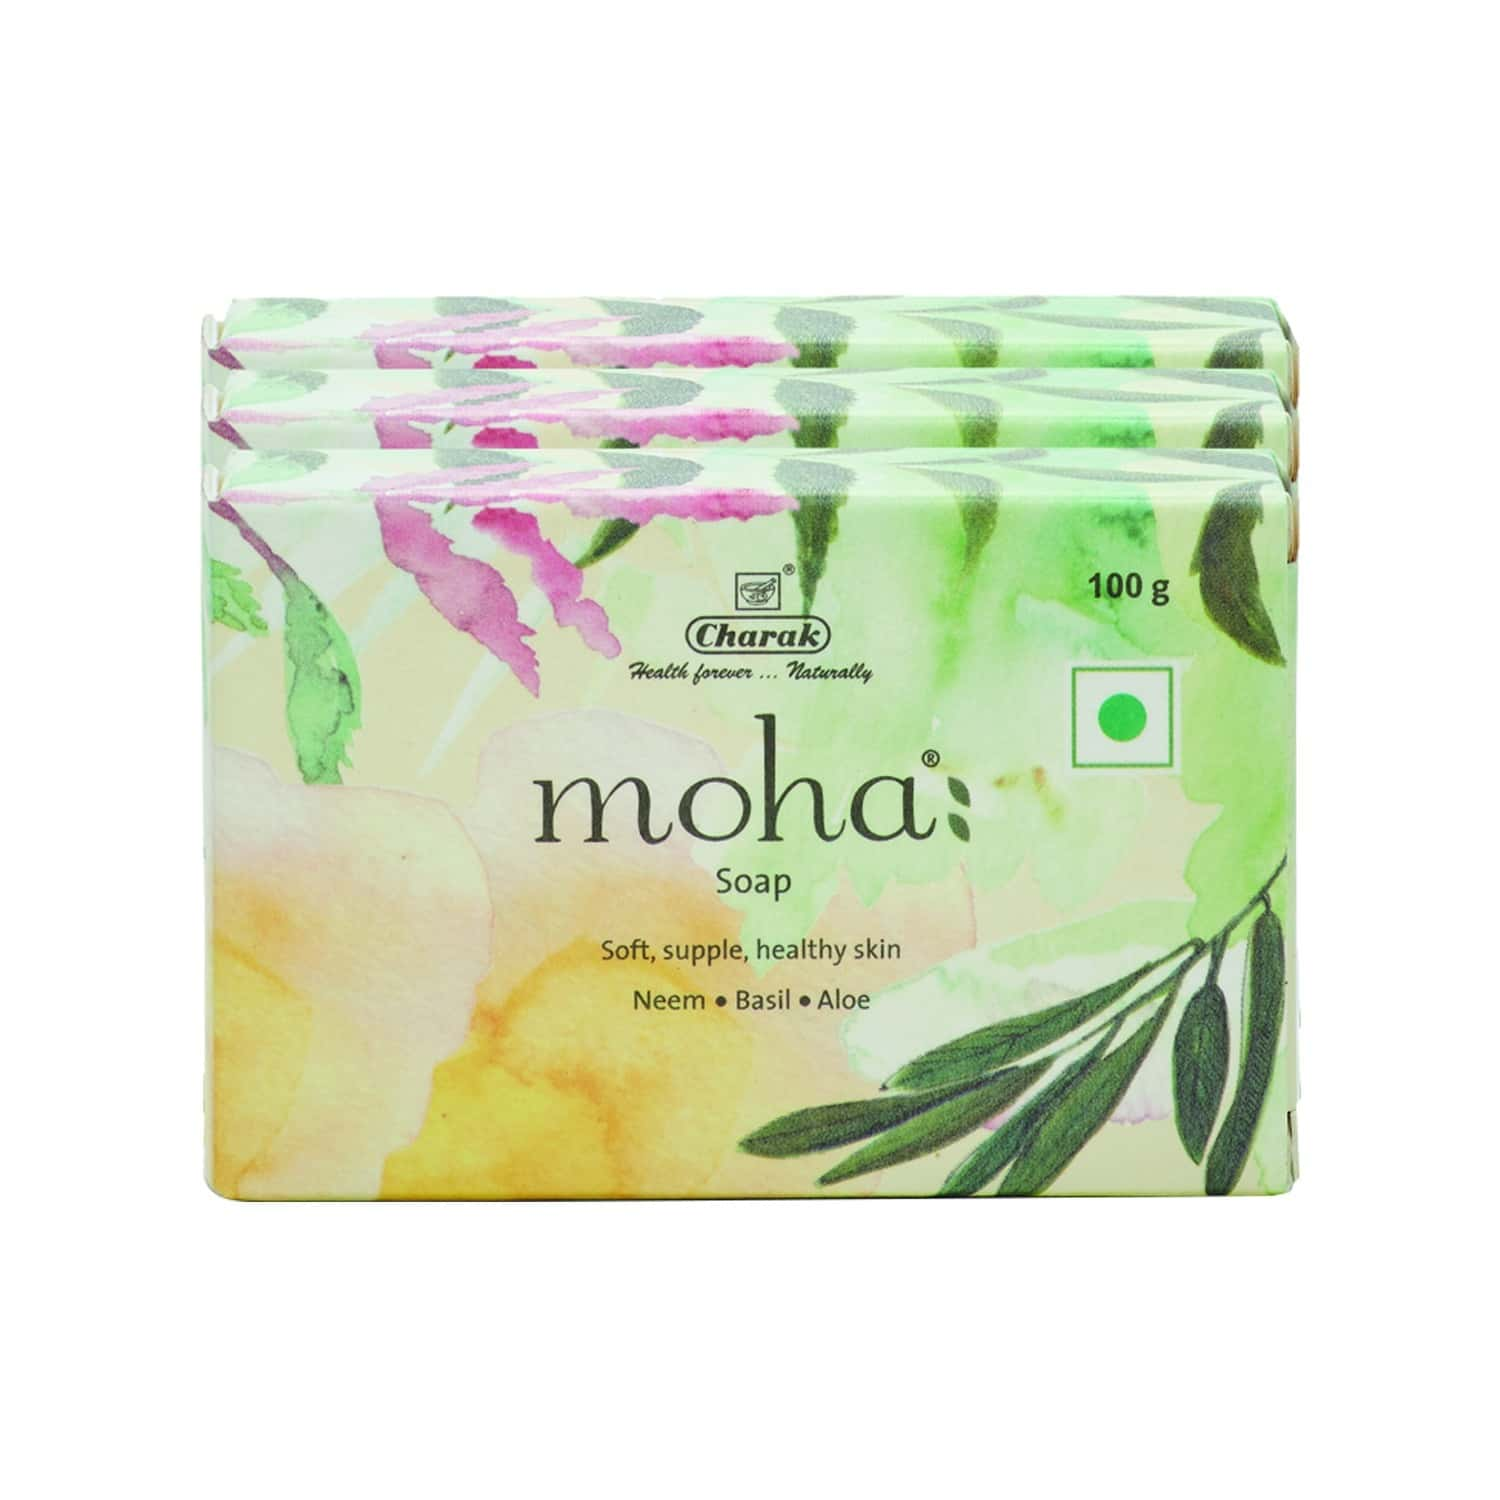 Moha Herbal Soap Box Of 300 G (buy 2 Get 1 Free)